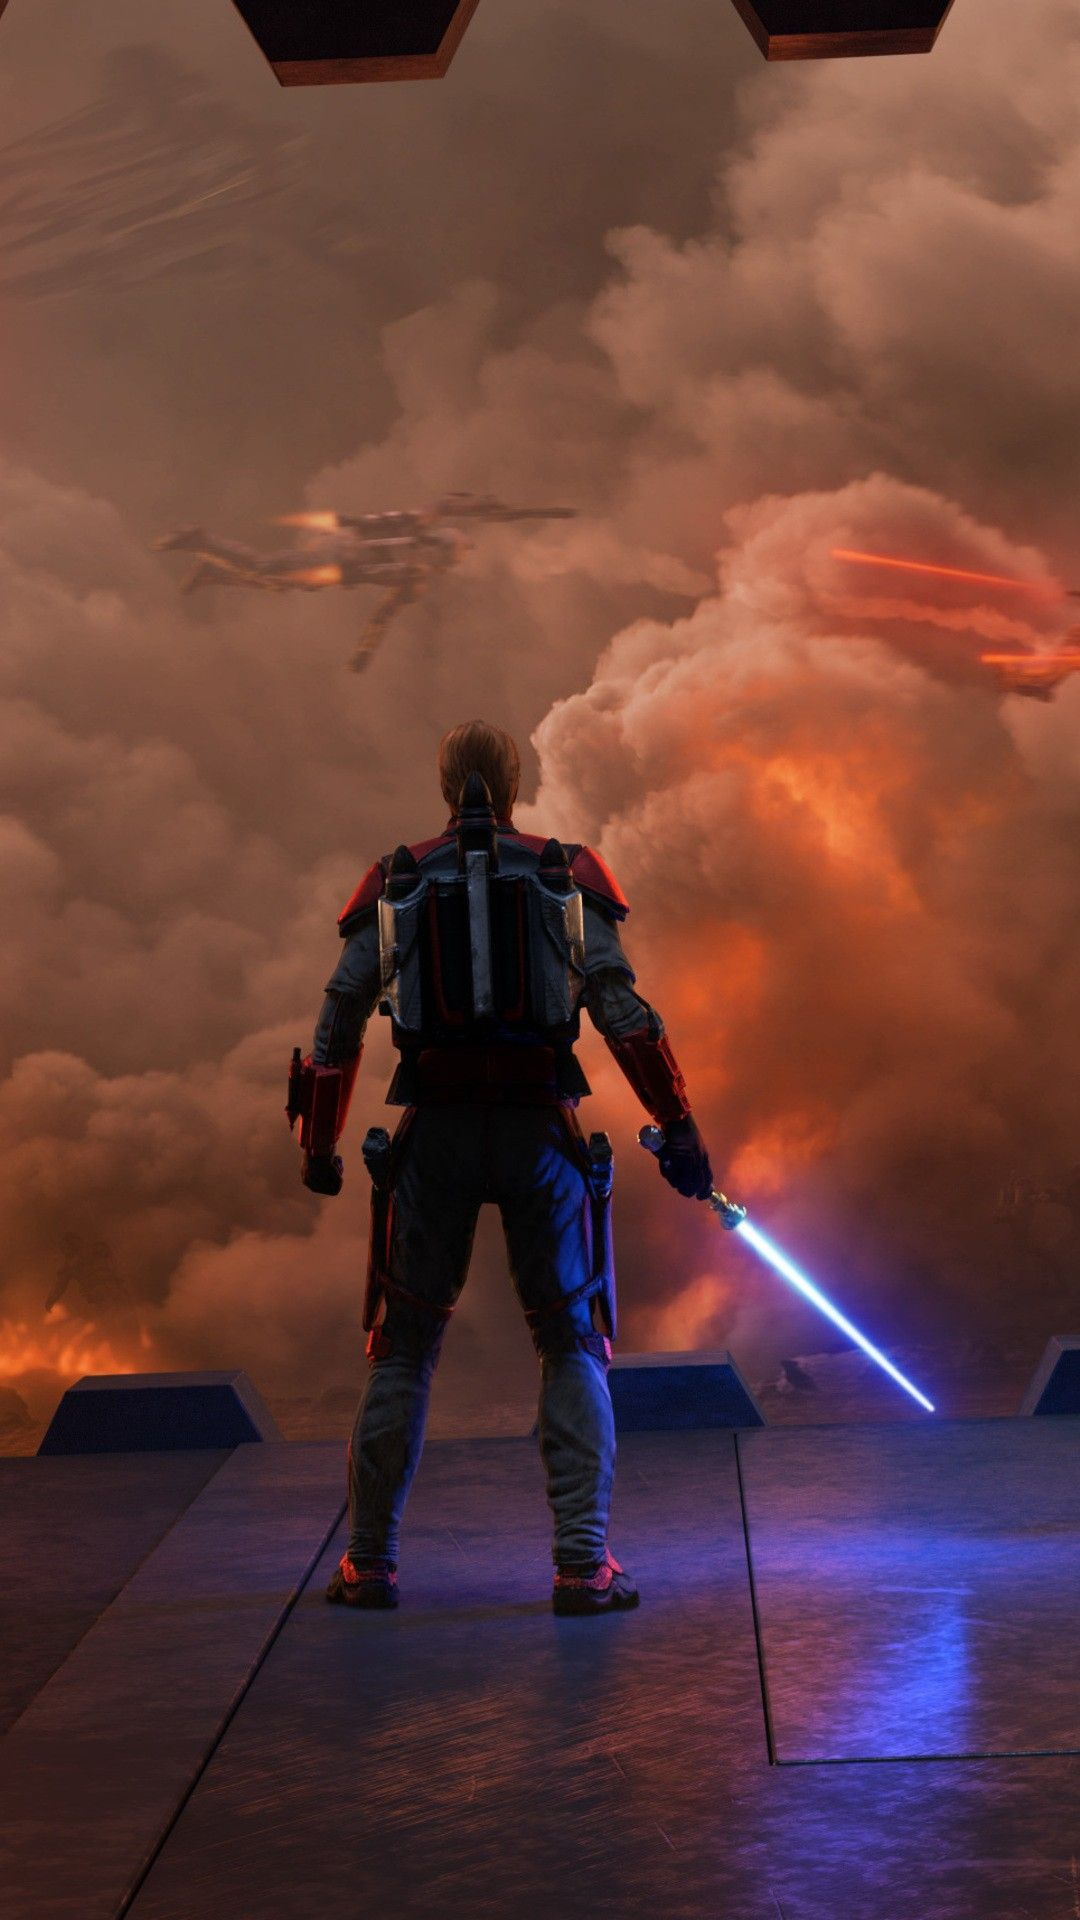 1080x1920 Star Wars Siege Of Mandalore Cs Wallpaper - [1080x1920 ...